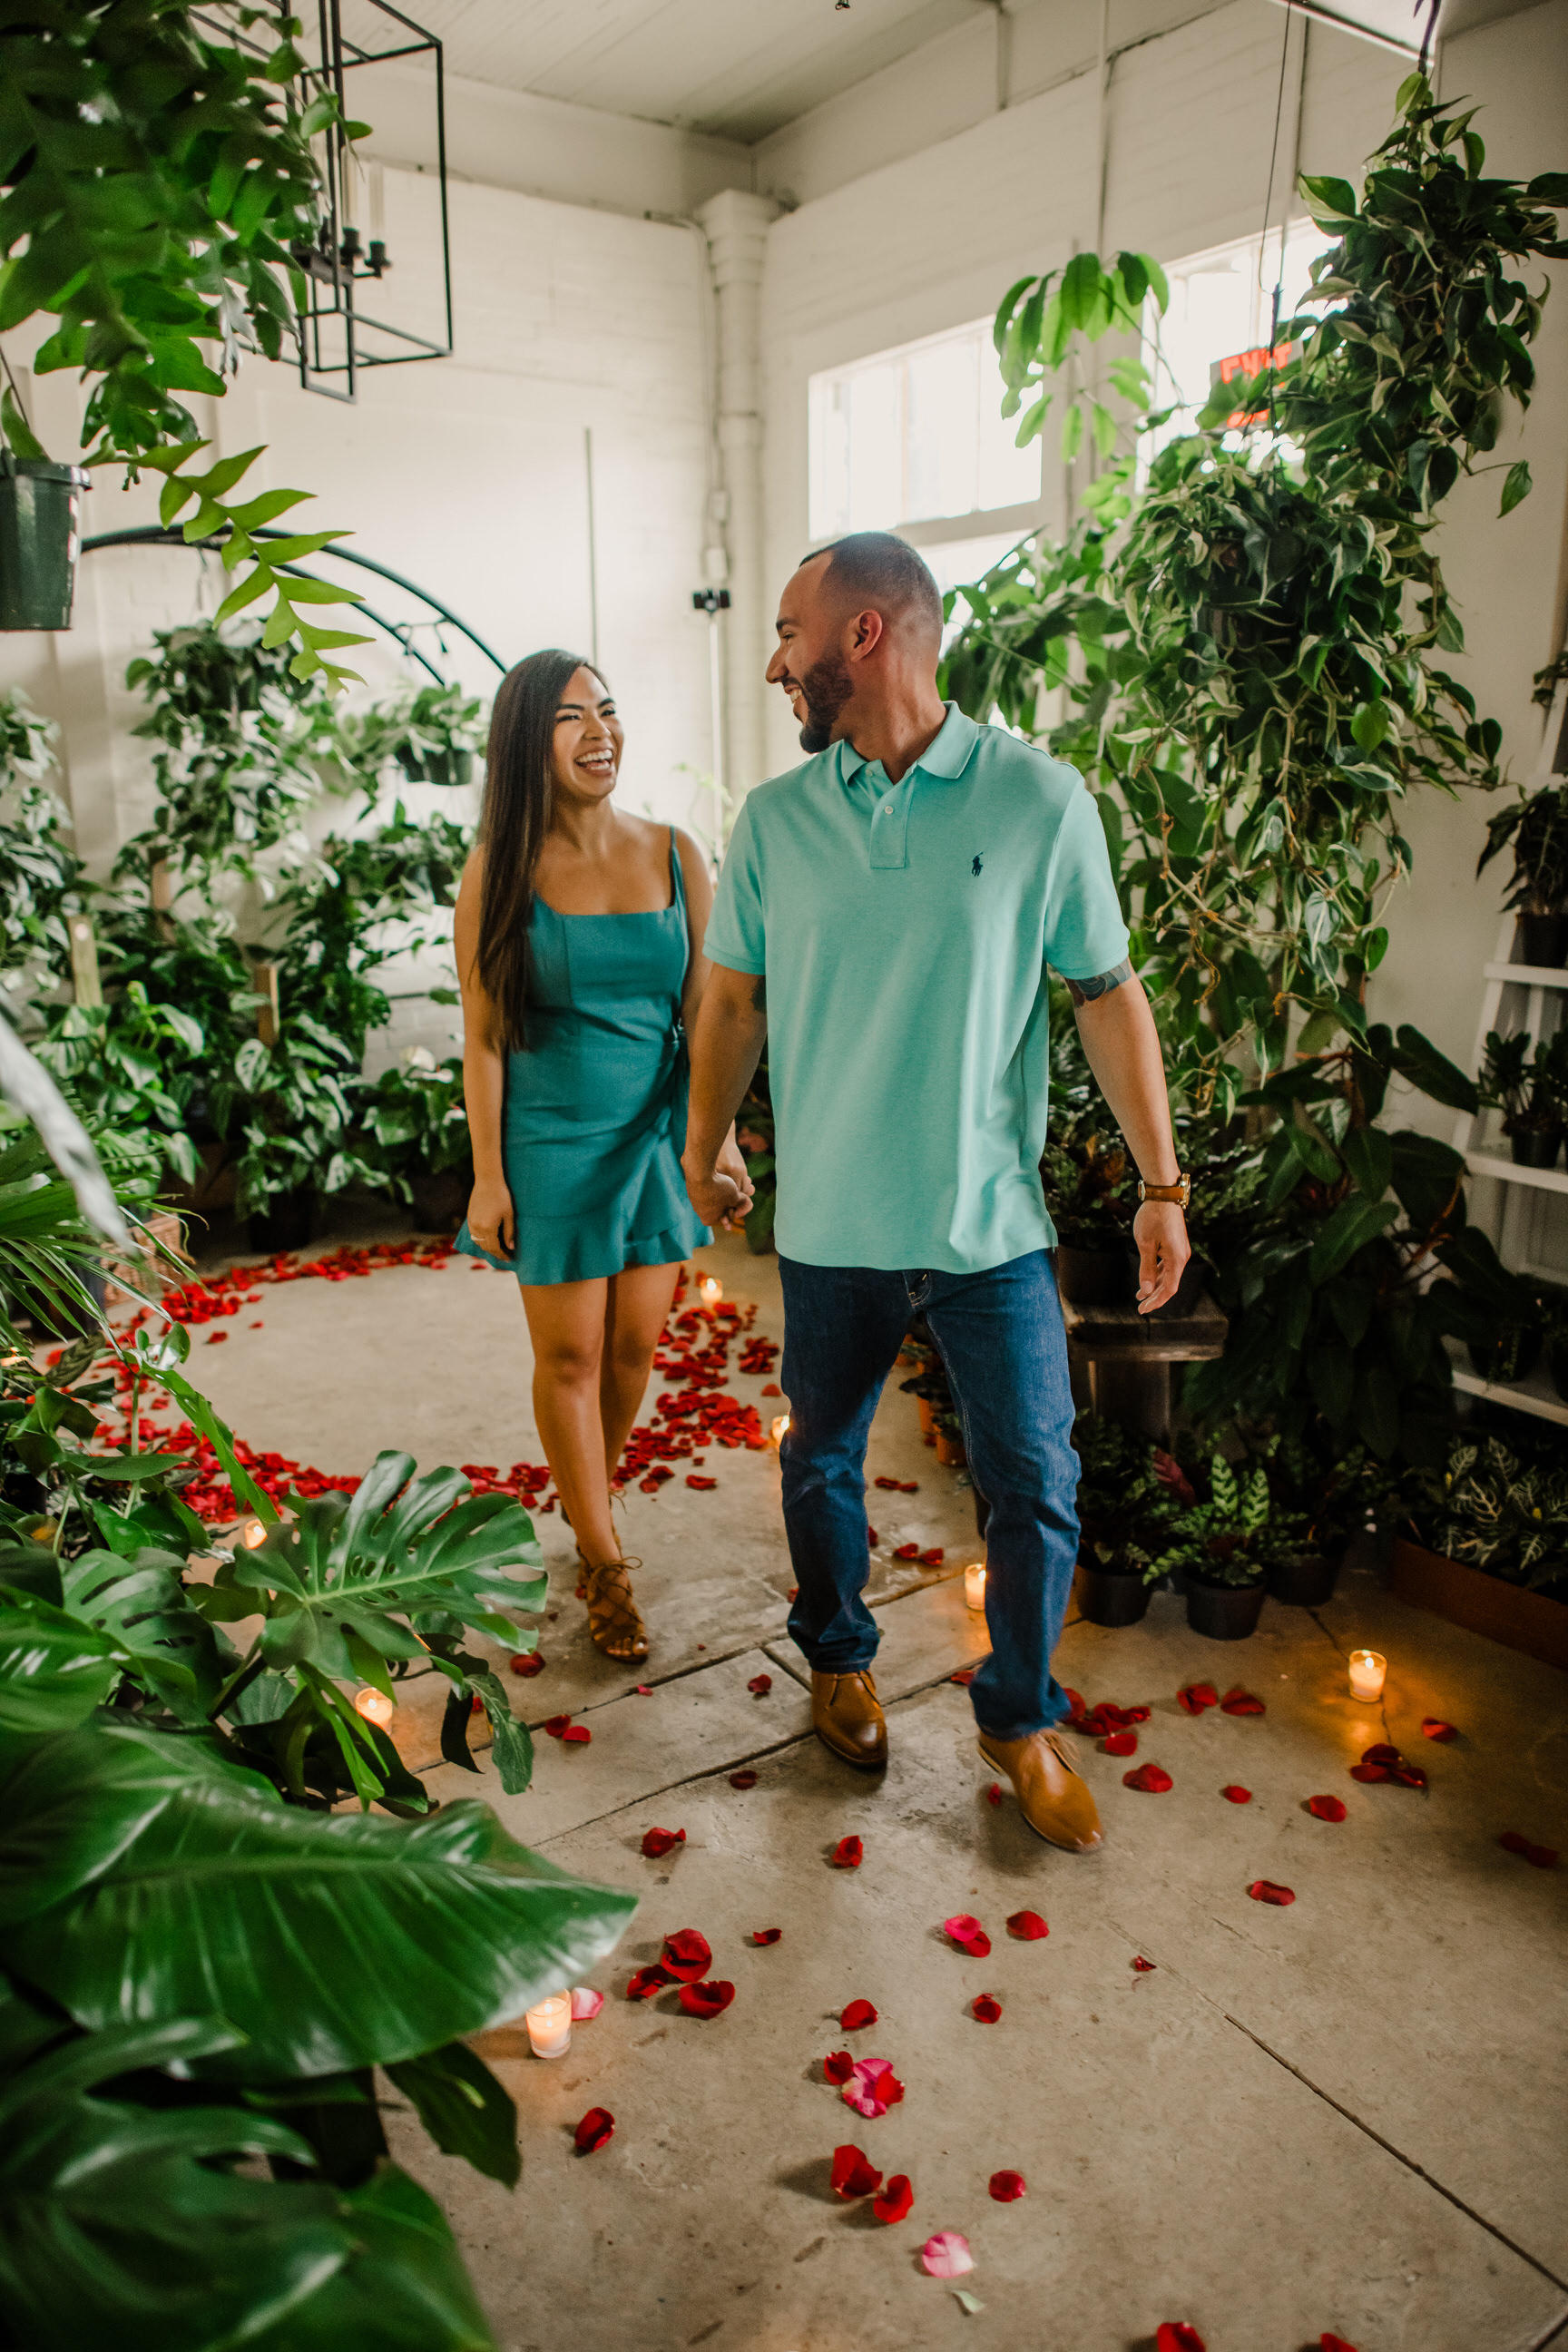 Valeria-Jonathan-Fancy-Free-Nursery-Tampa-Florida-Proposal-133.jpg